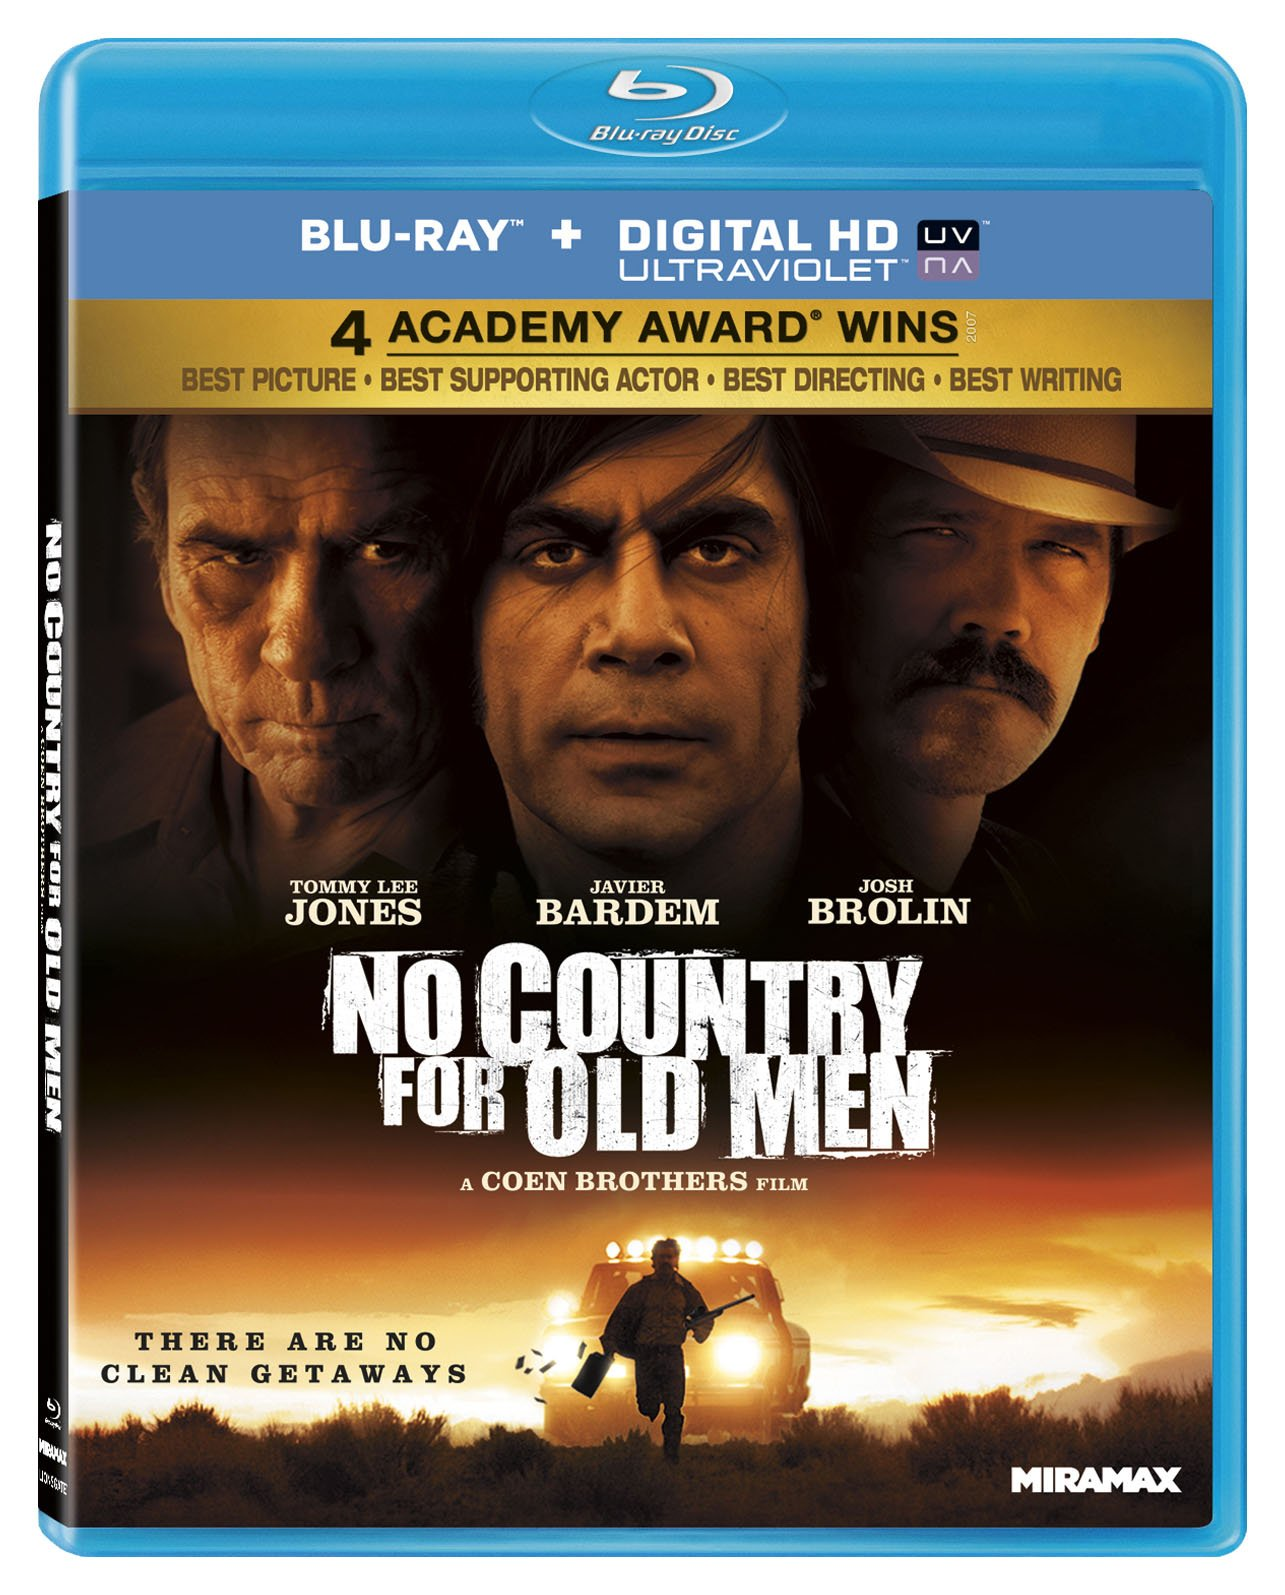 Blu-ray : No Country For Old Men (Widescreen, AC-3, Digital Theater System)